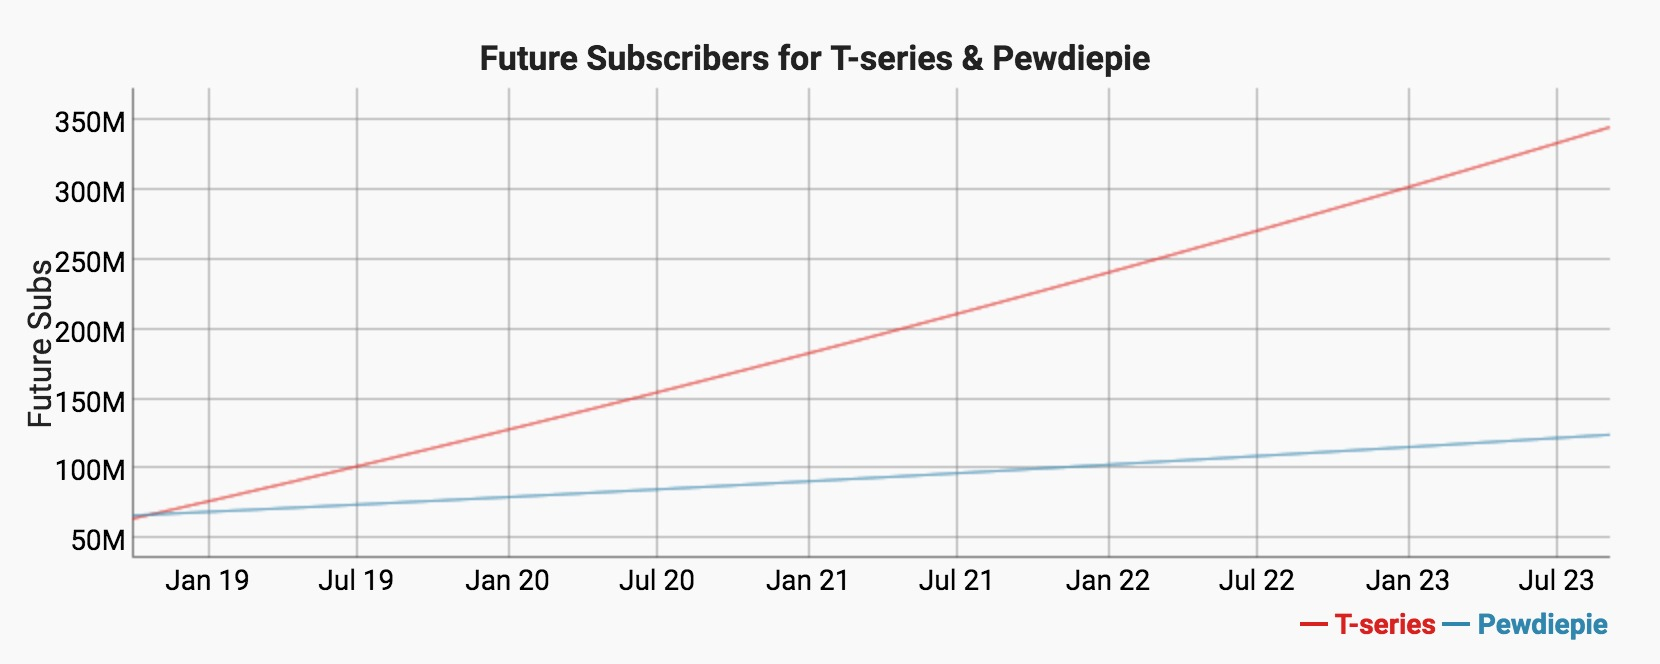 T-Series PewDiePie YouTube subscribers